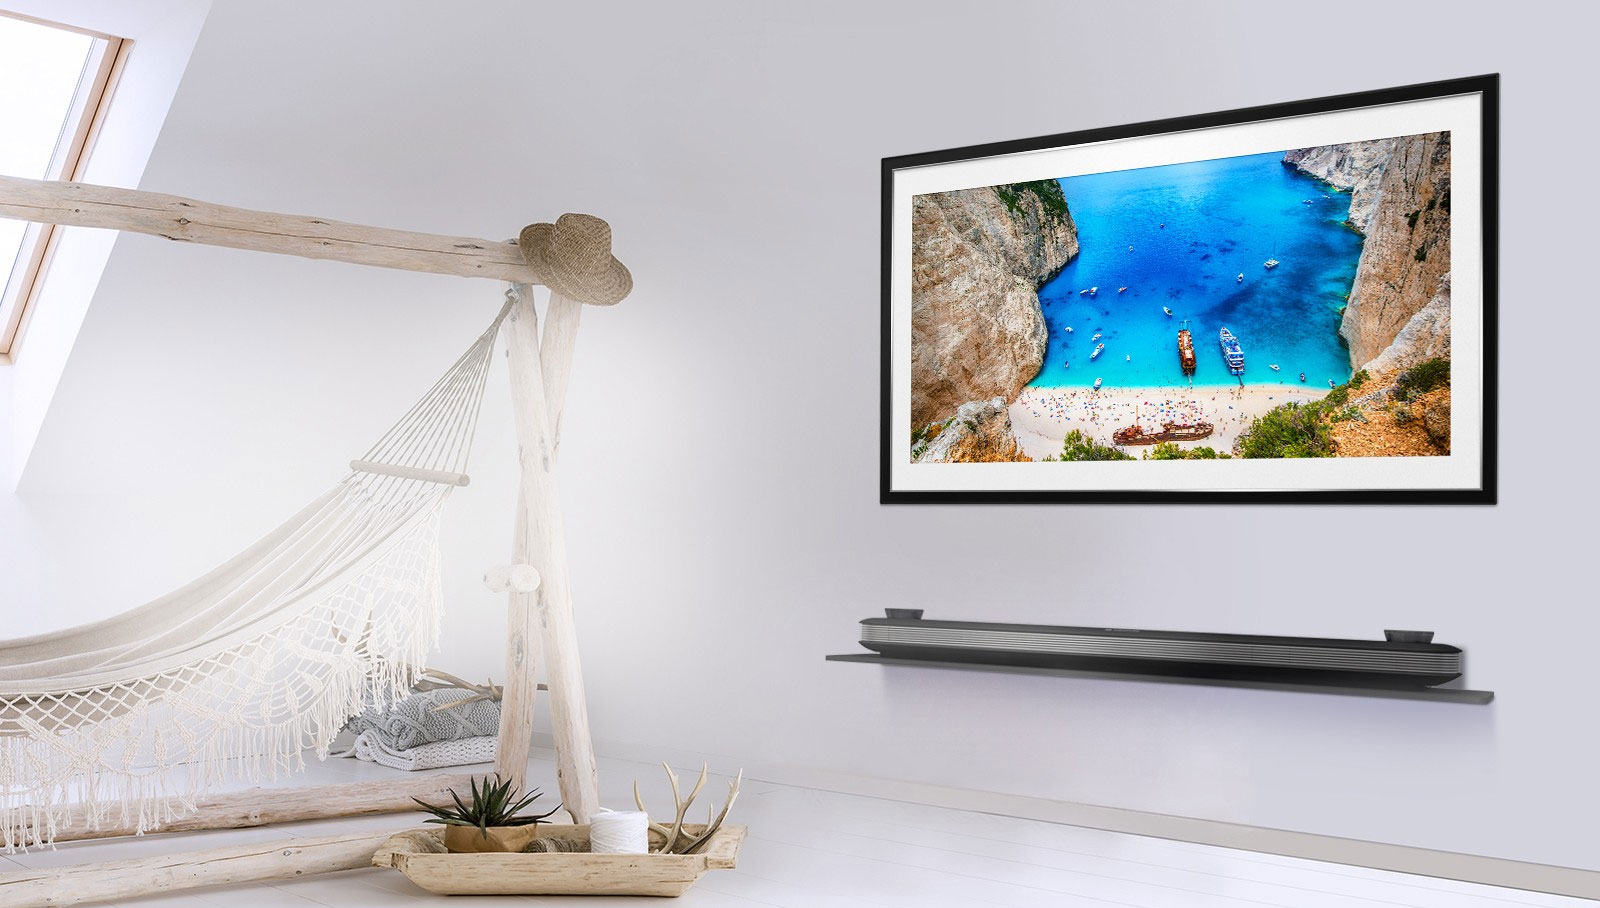 LG partners with Tripadvisor & expands 'Gallery' mode to